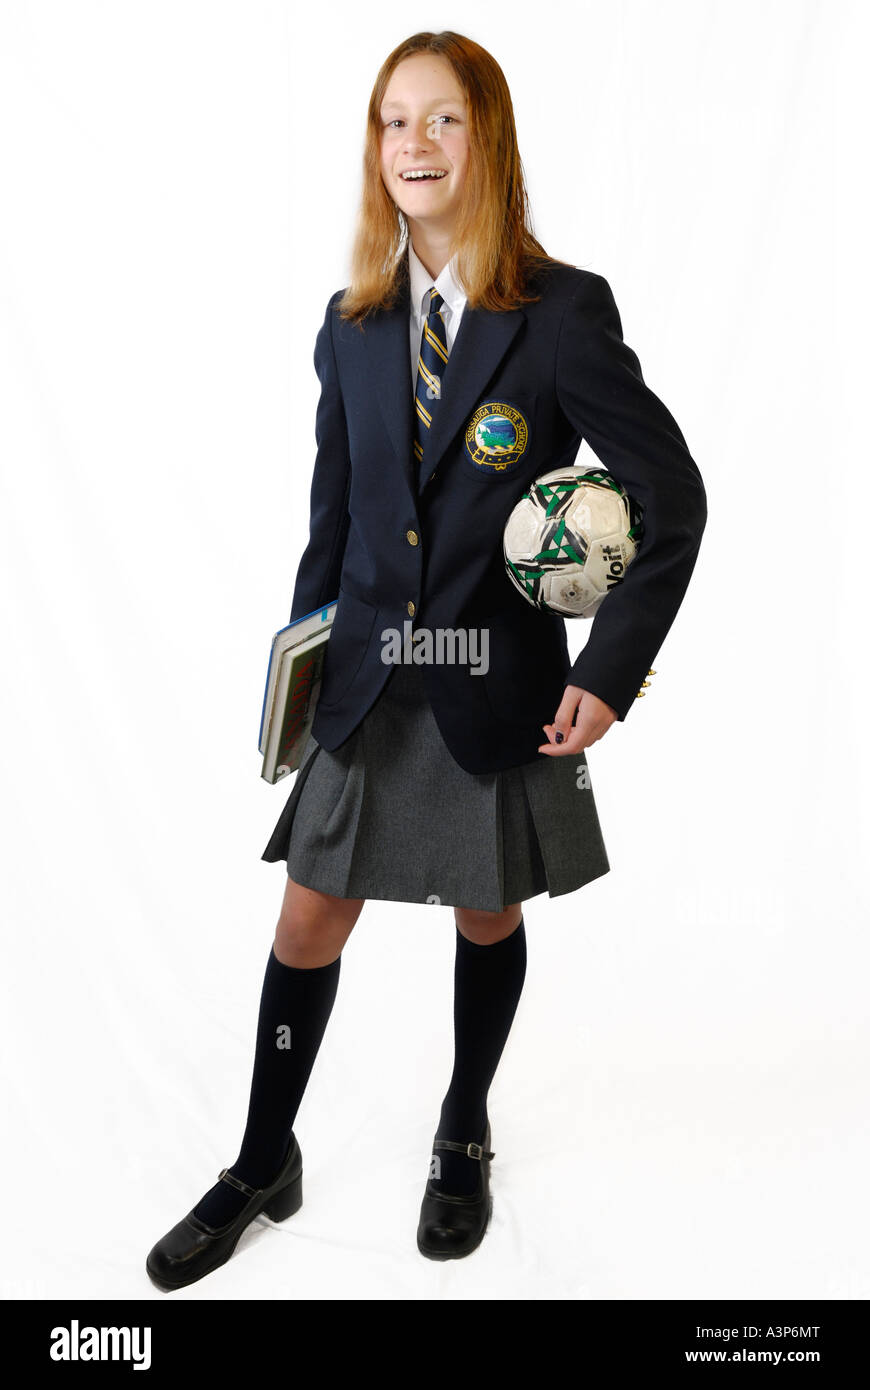 Smiling young girl in private school uniform with books and ball on white background - Stock Image